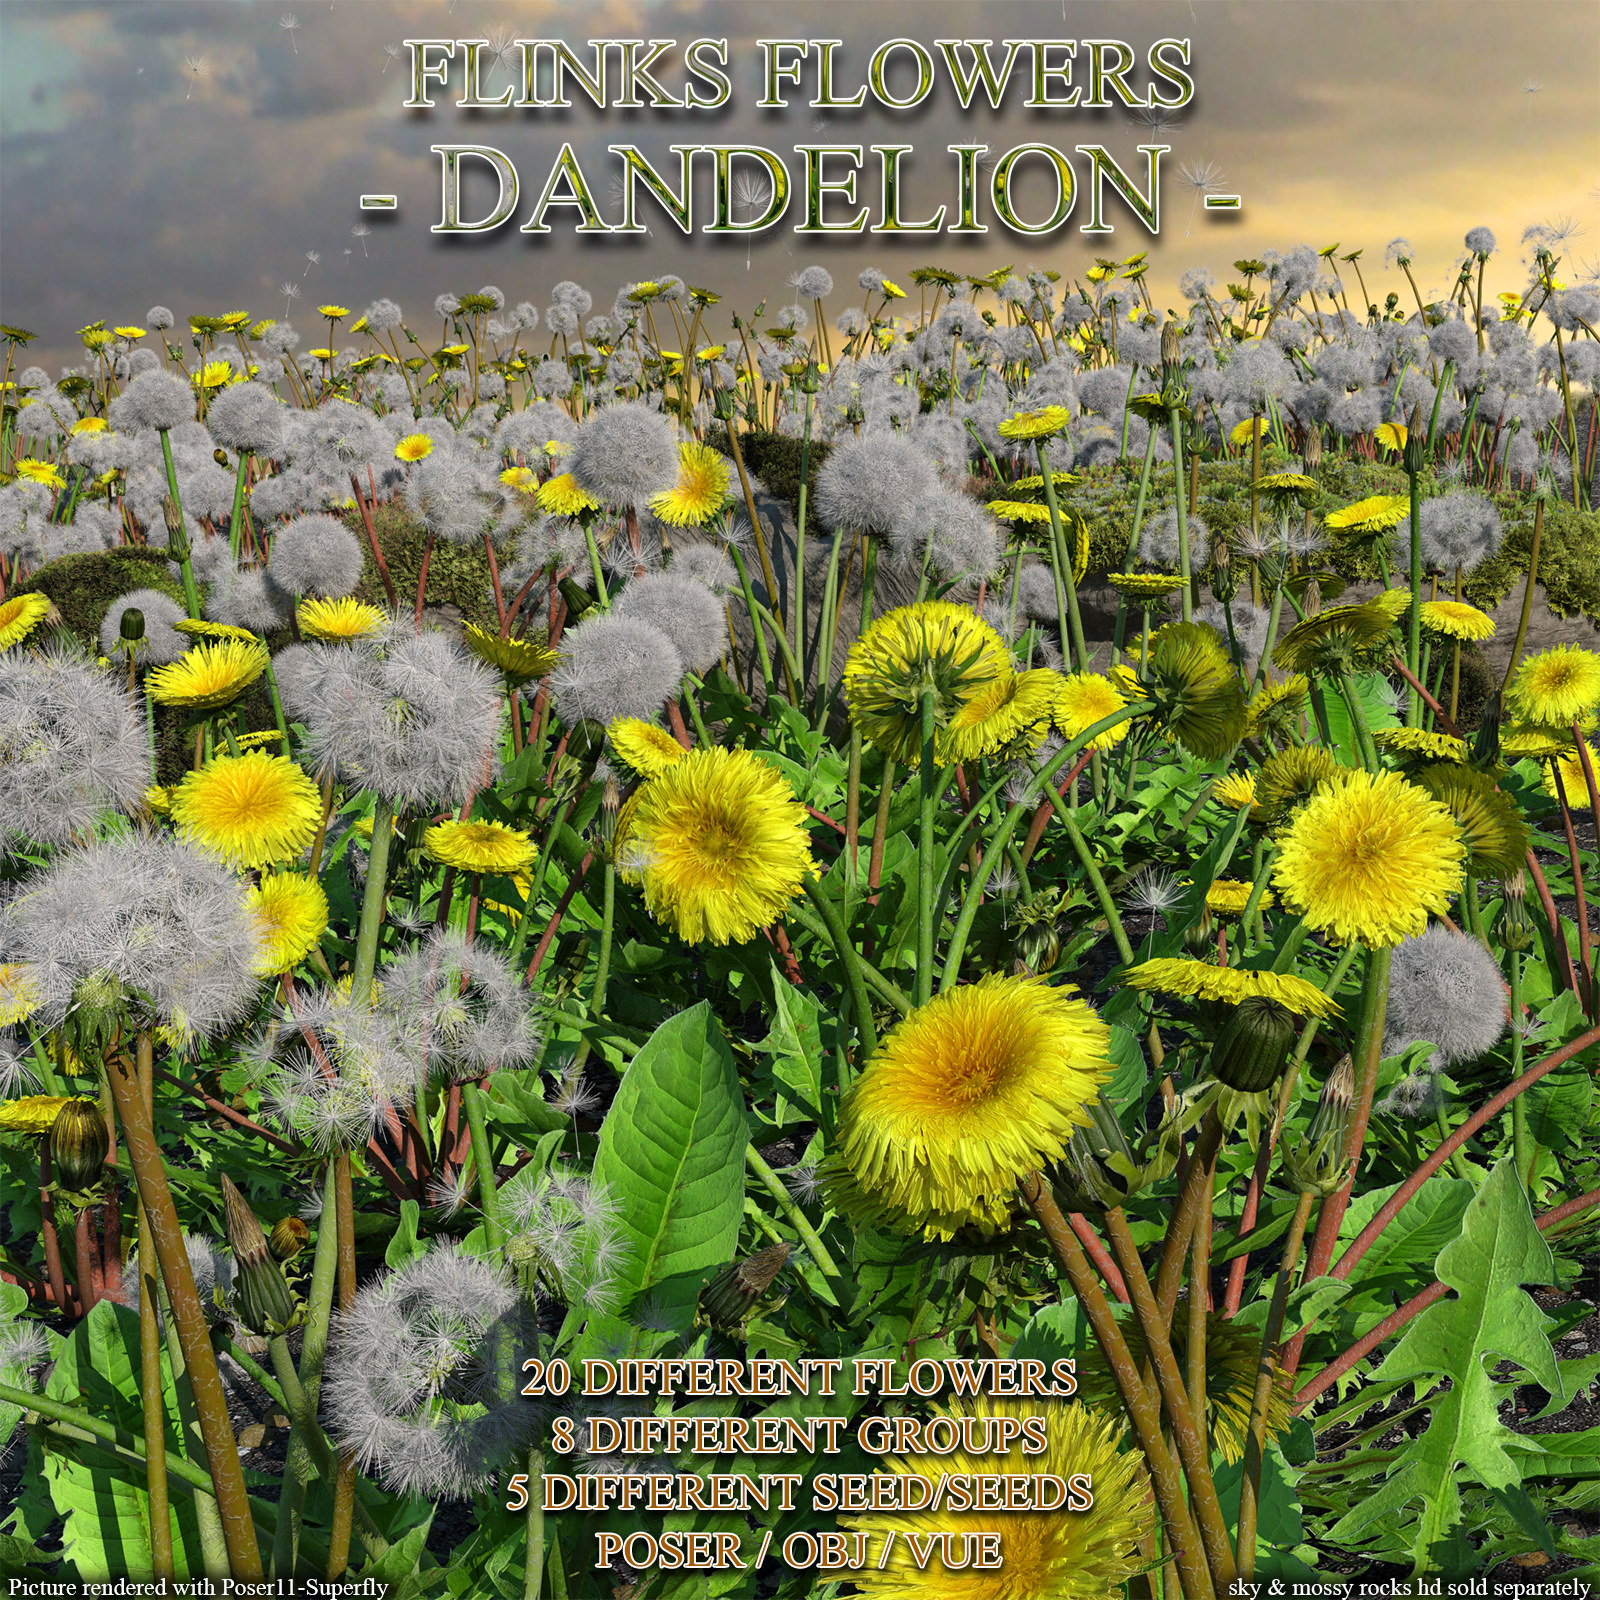 Flinks Flowers - Flower 7 - Dandelion